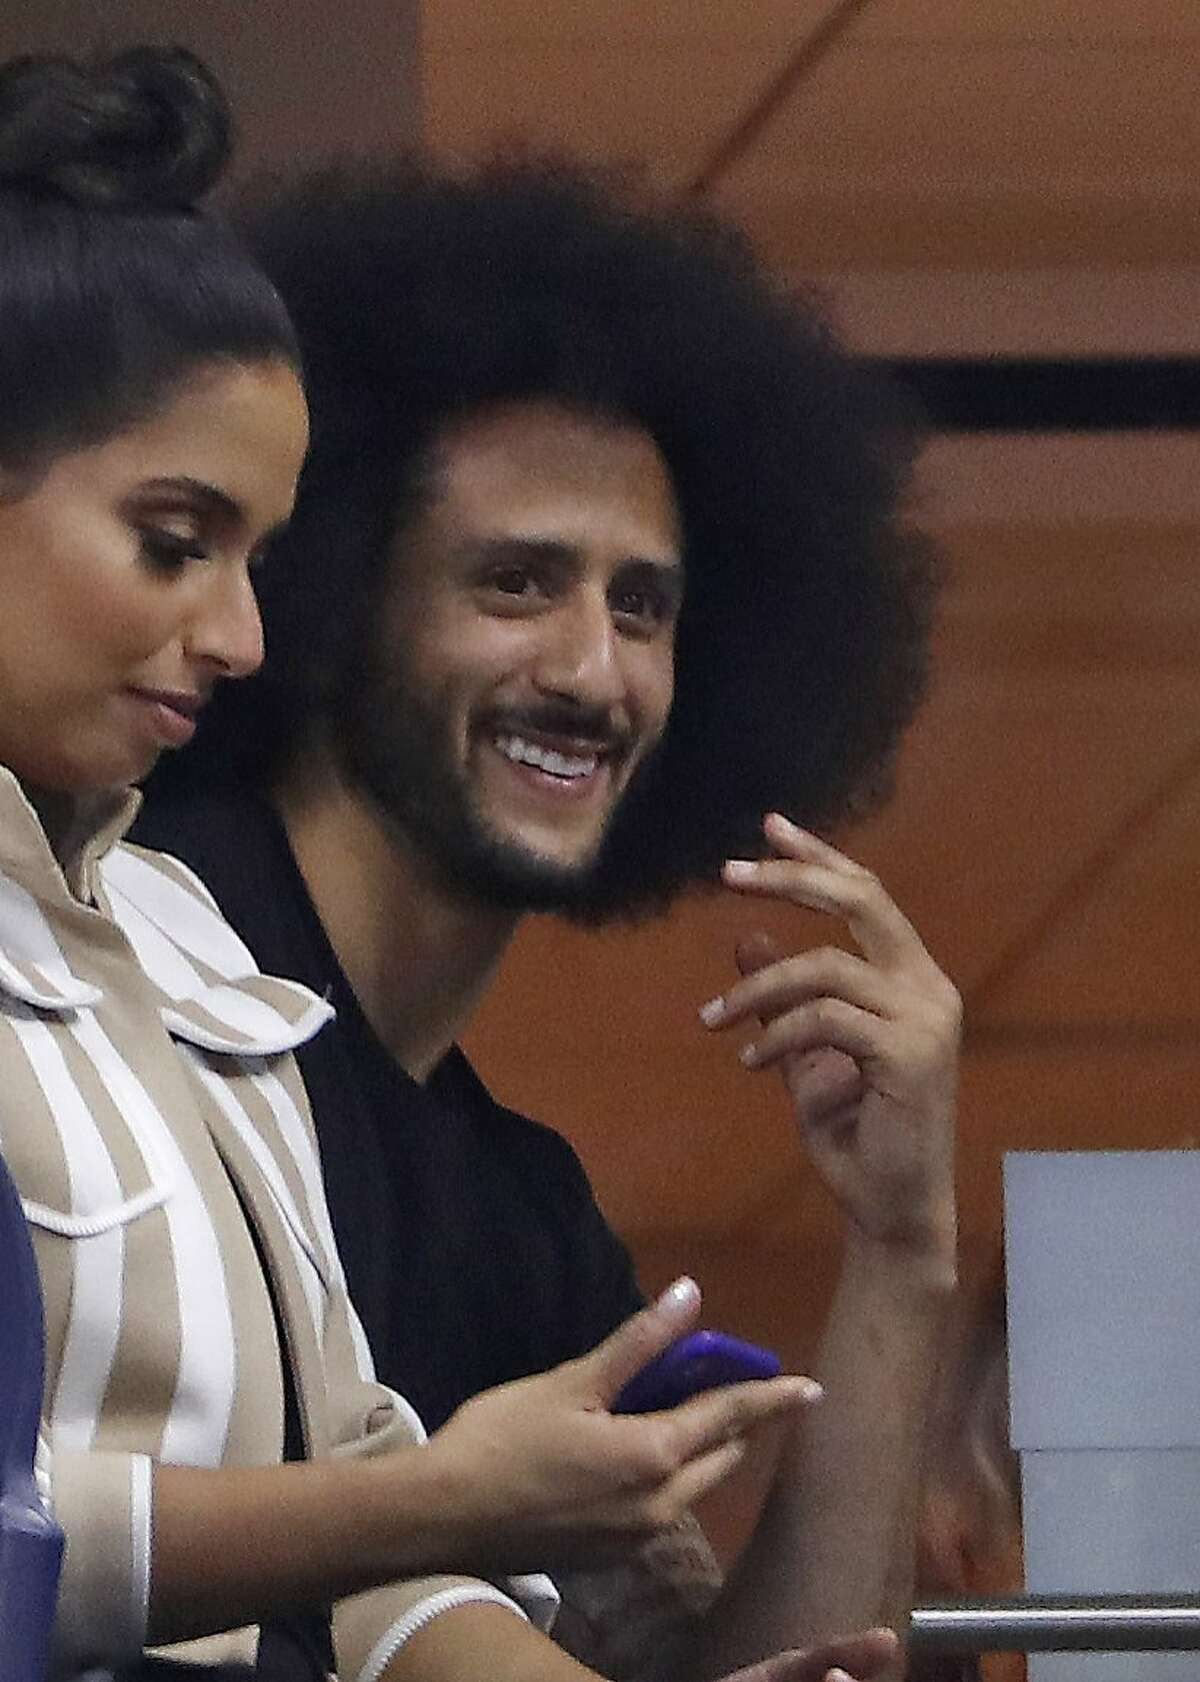 Colin Kaepernick watches Serena Williams play Venus Williams during the third round of the U.S. Open tennis tournament Friday, Aug. 31, 2018, in New York. (AP Photo/Adam Hunger)